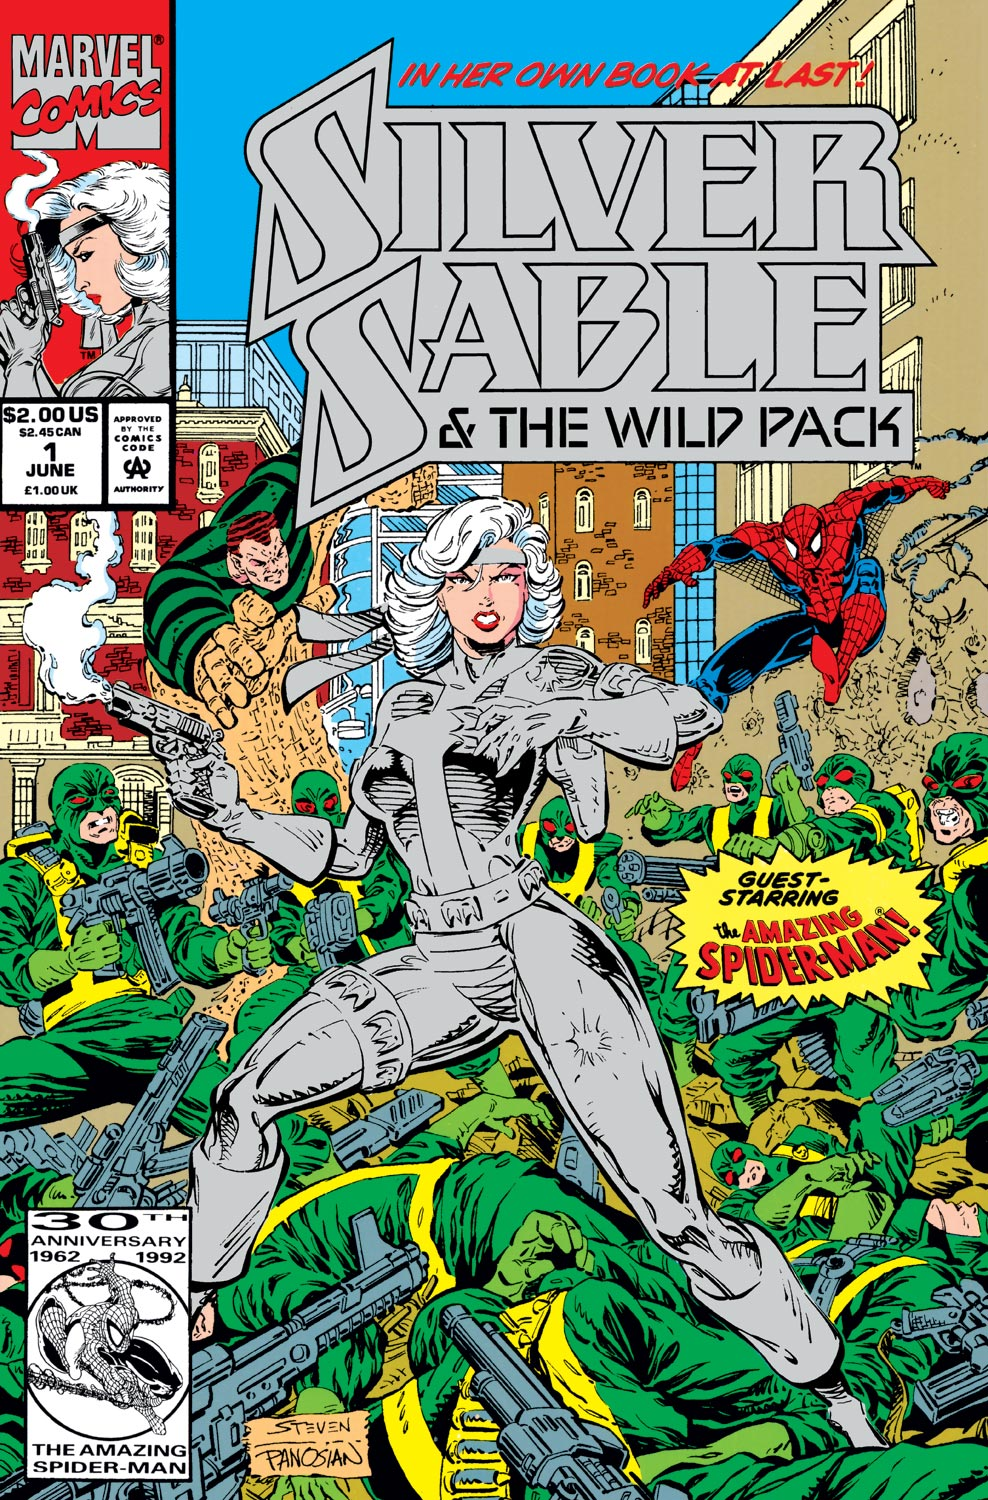 Silver Sable & the Wild Pack (1992) #1